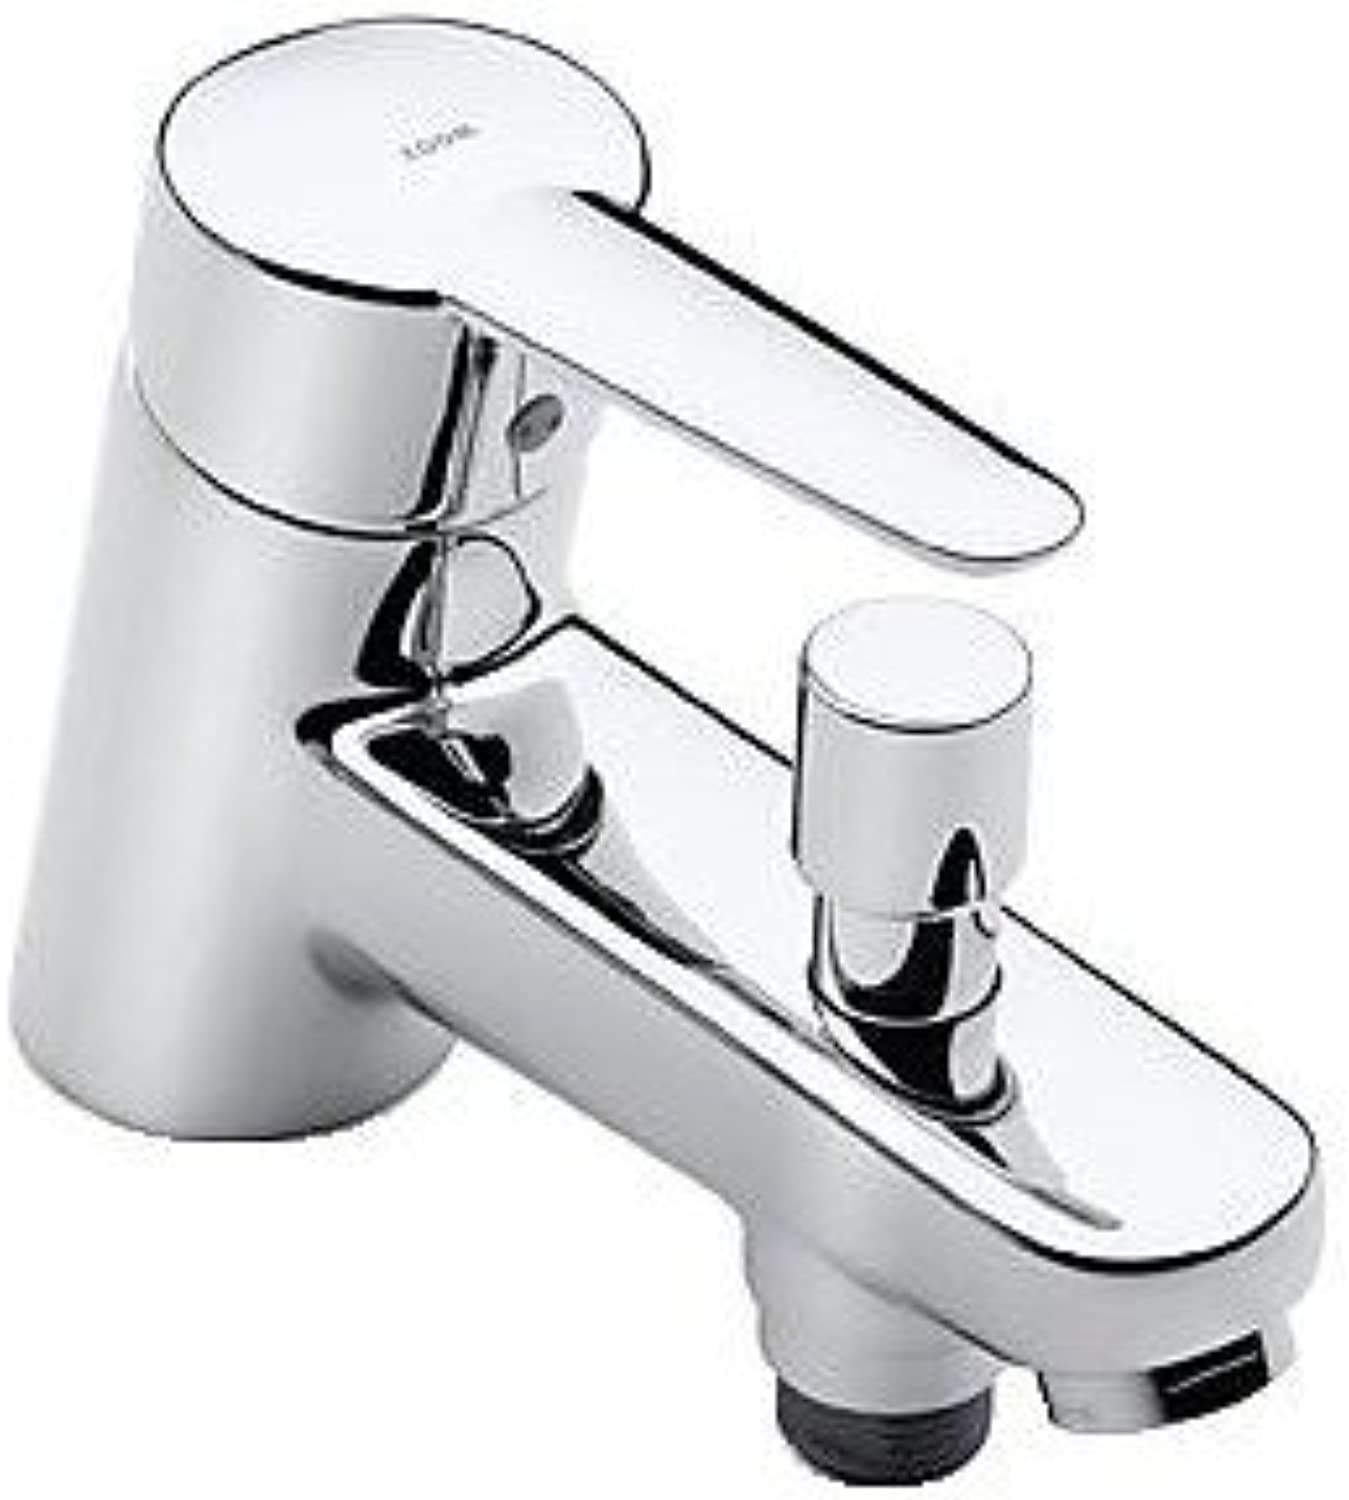 Roca france - One-hole bath shower single hand faucet POLO - WM325011Z000003 -   WM325011Z000003